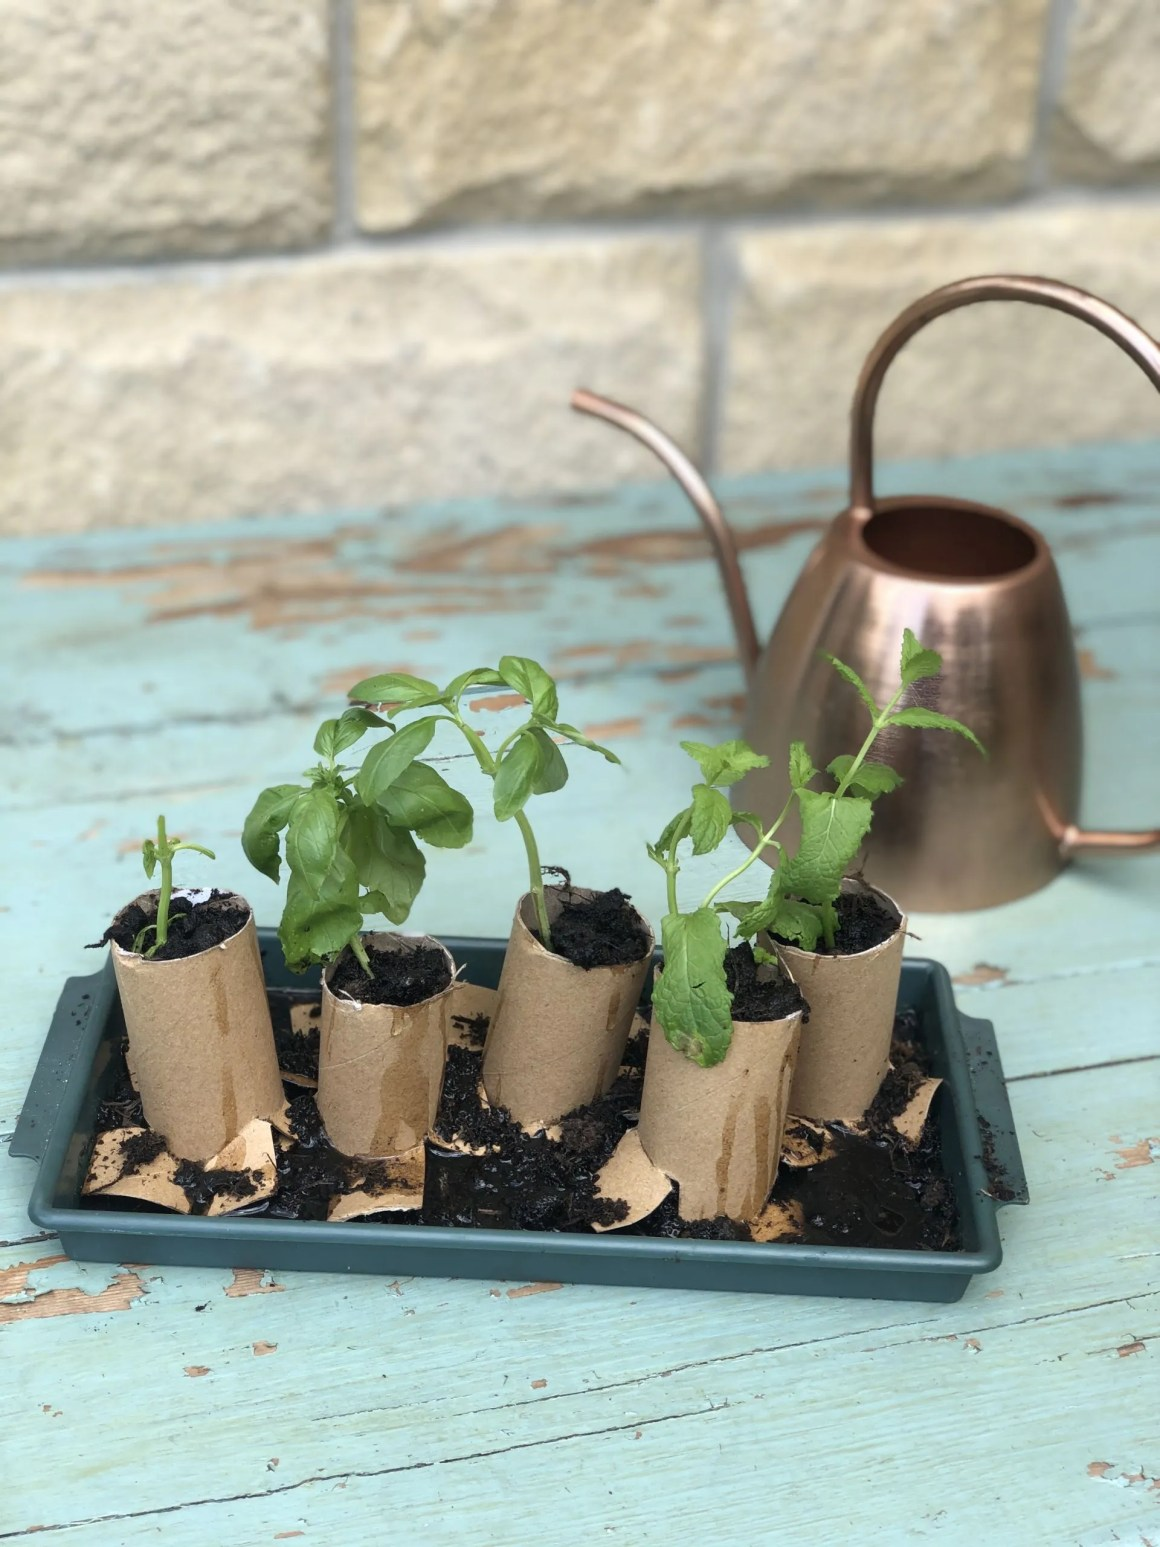 potting on propagated herb cuttings